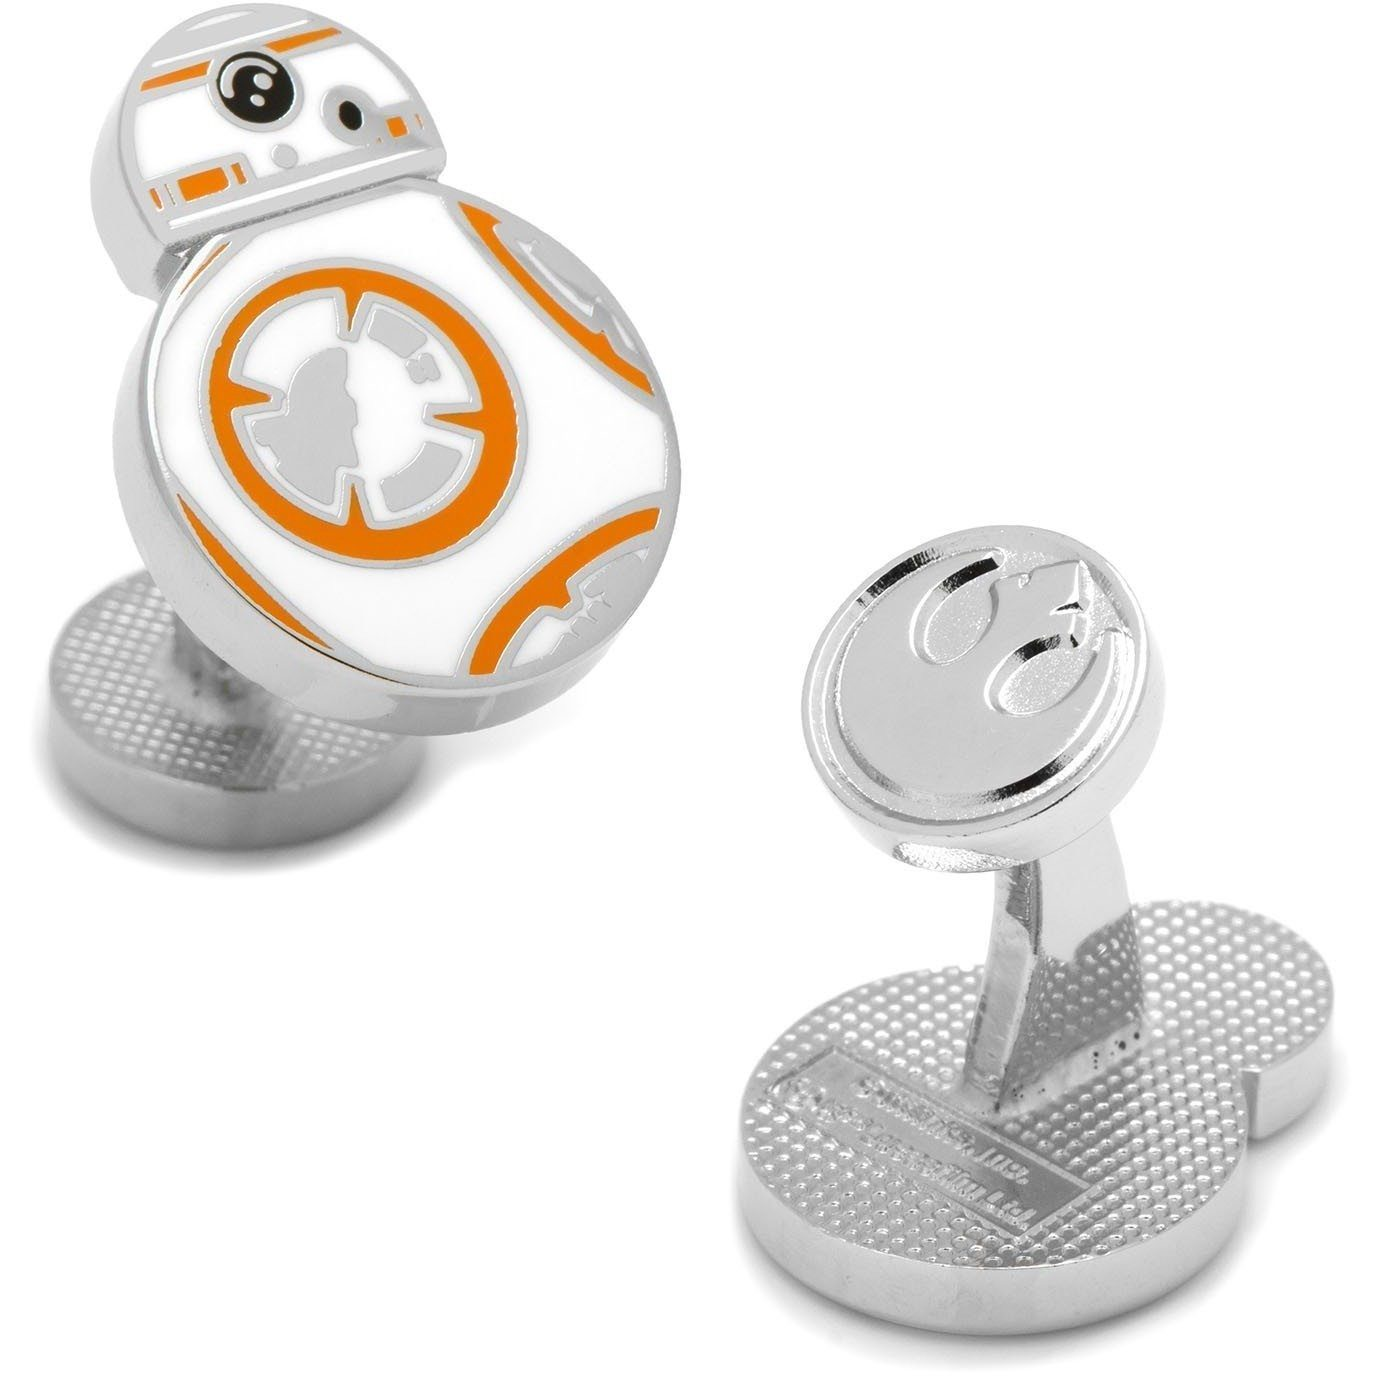 Star Wars BB-8 Cufflinks, Novelty Cufflinks, Cuffed.com.au, CL5896, $69.00